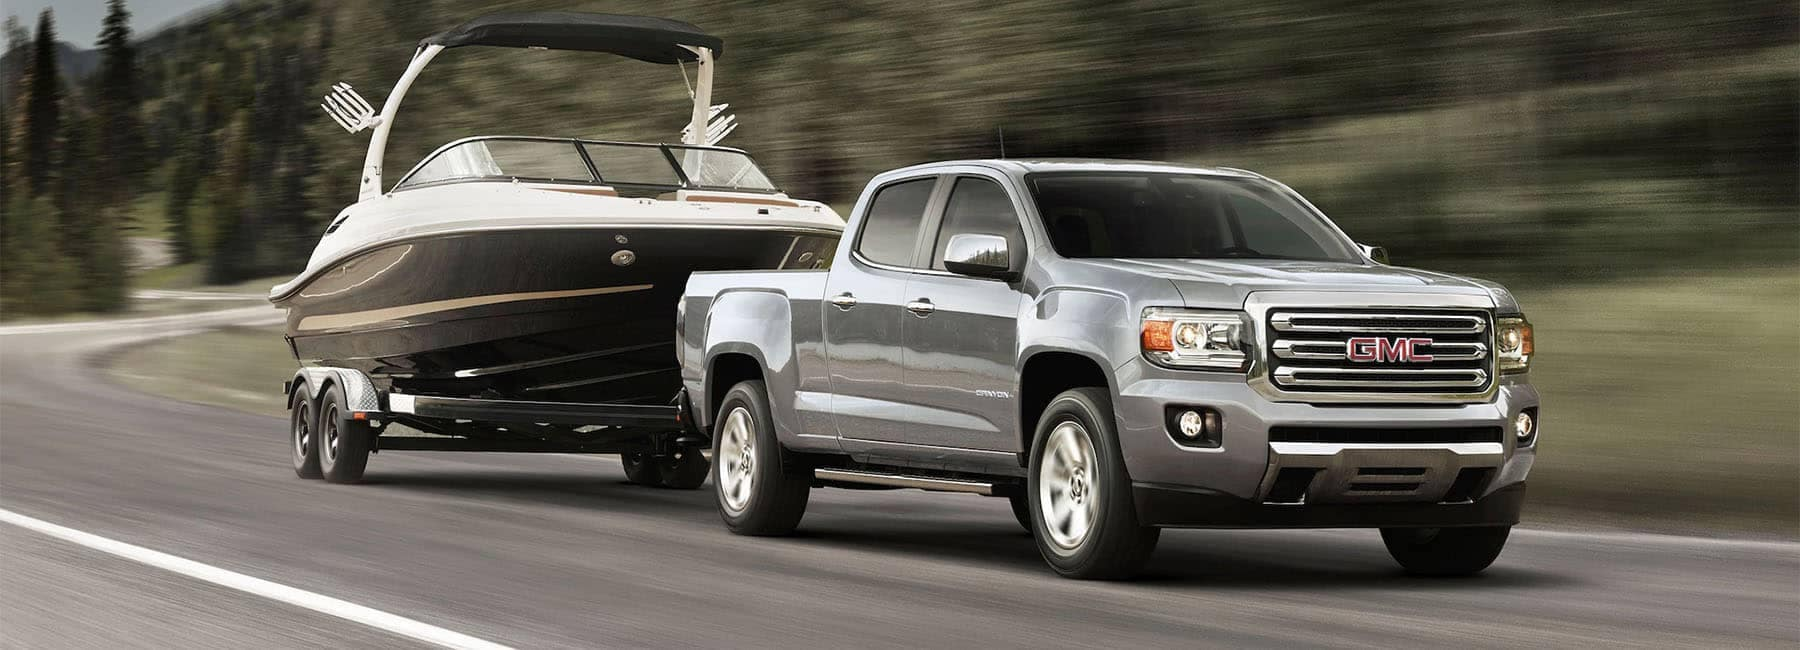 2020 GMC Canyon Small Pickup Truck External Gallery Image Towing Boat